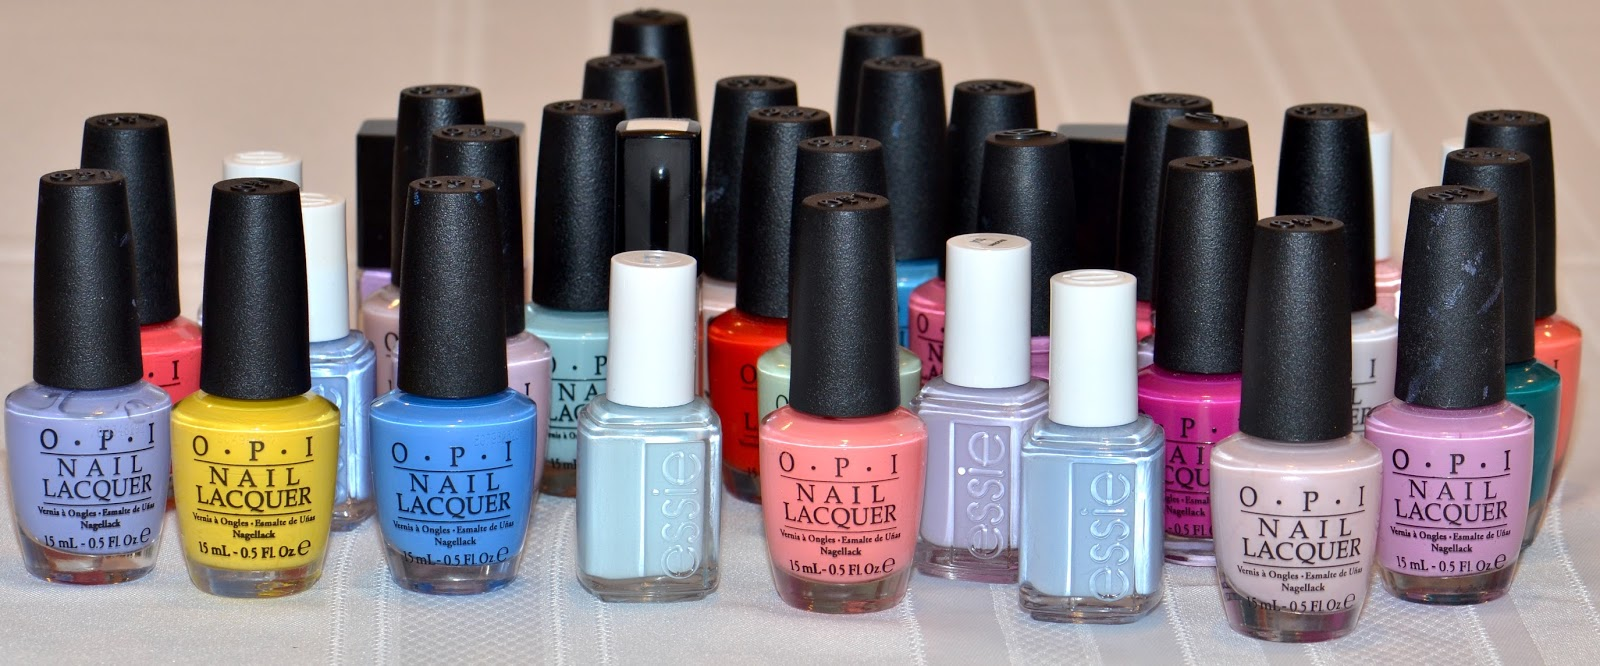 TOP 35 NAIL POLISHES FOR SPRING/SUMMER 2016 - FEATURING ESSIE, OPI ...